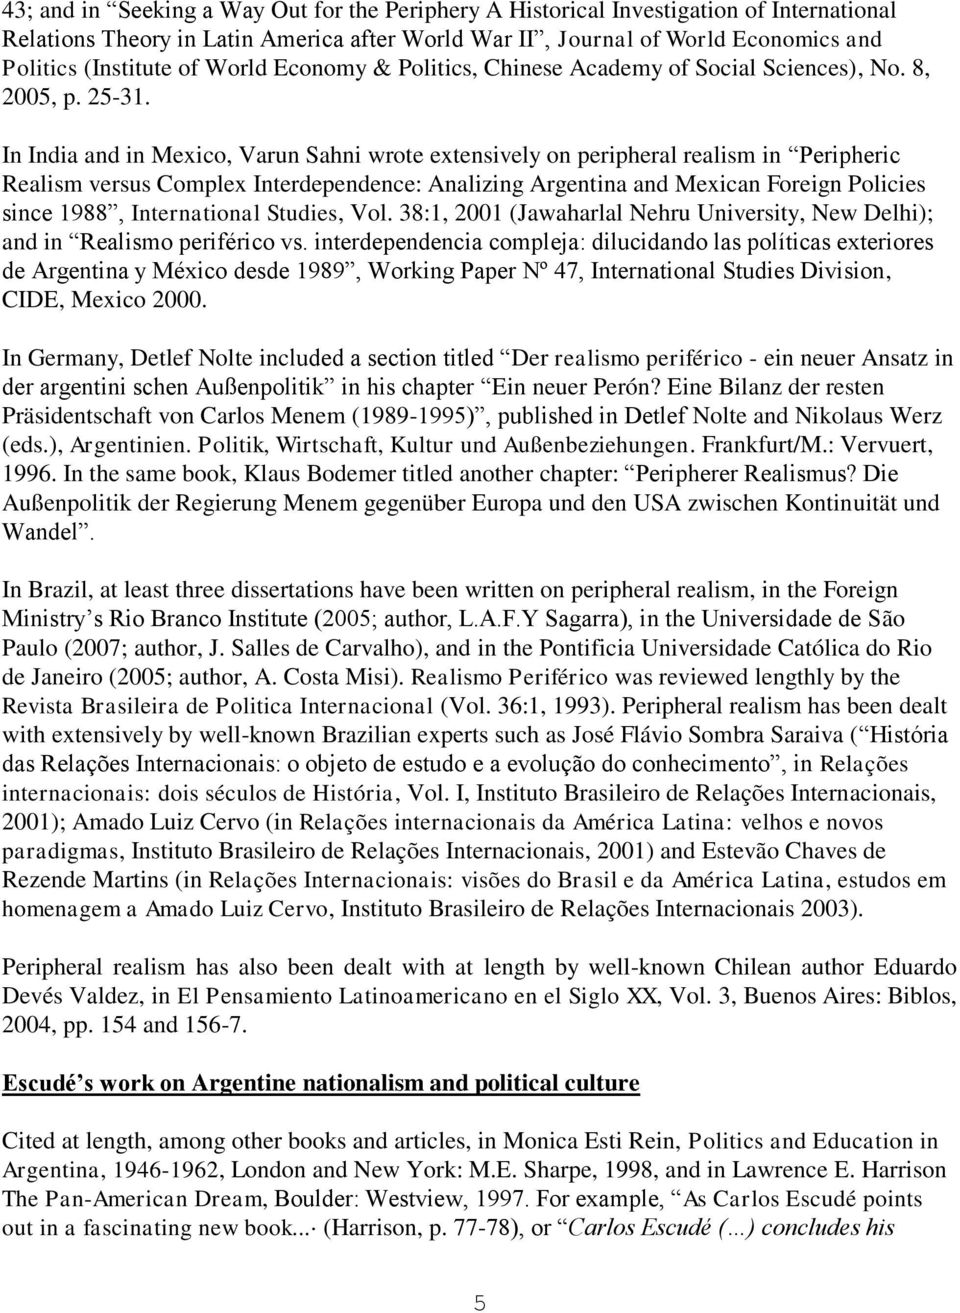 In India and in Mexico, Varun Sahni wrote extensively on peripheral realism in Peripheric Realism versus Complex Interdependence: Analizing Argentina and Mexican Foreign Policies since 1988,